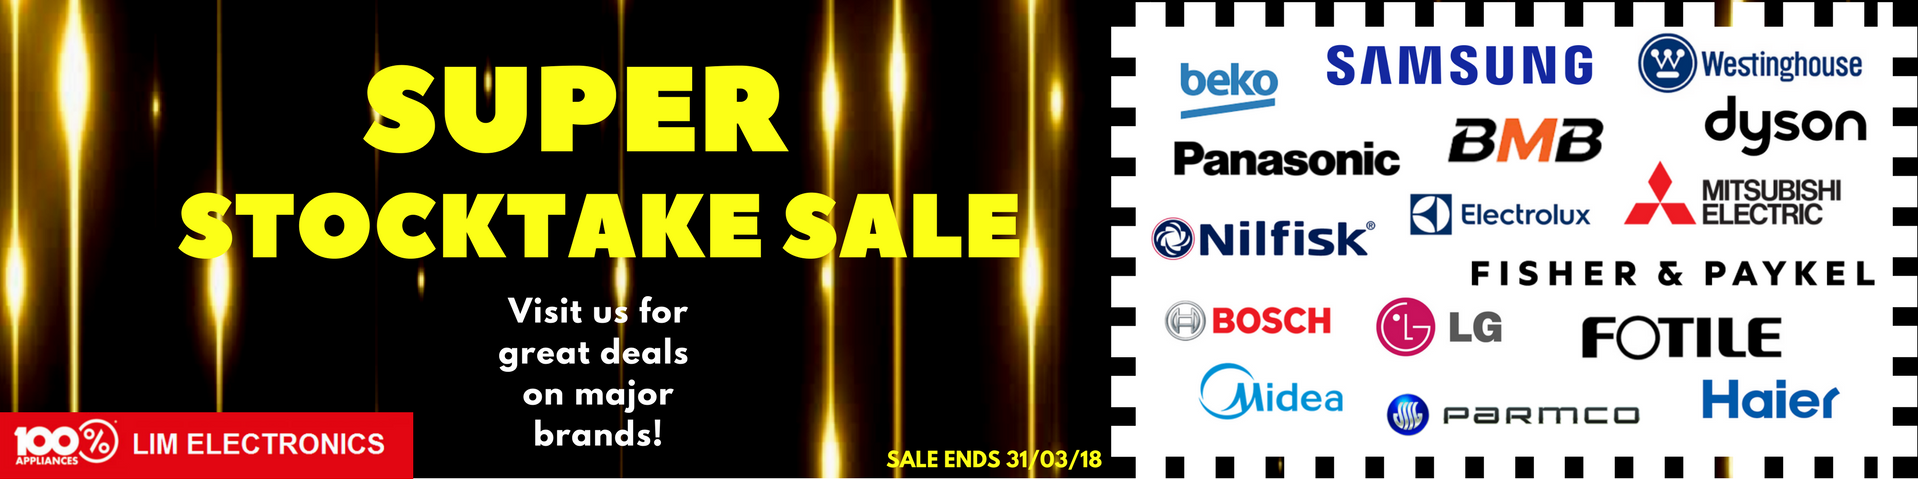 catalog/banner/stocktakesale03181.PNG